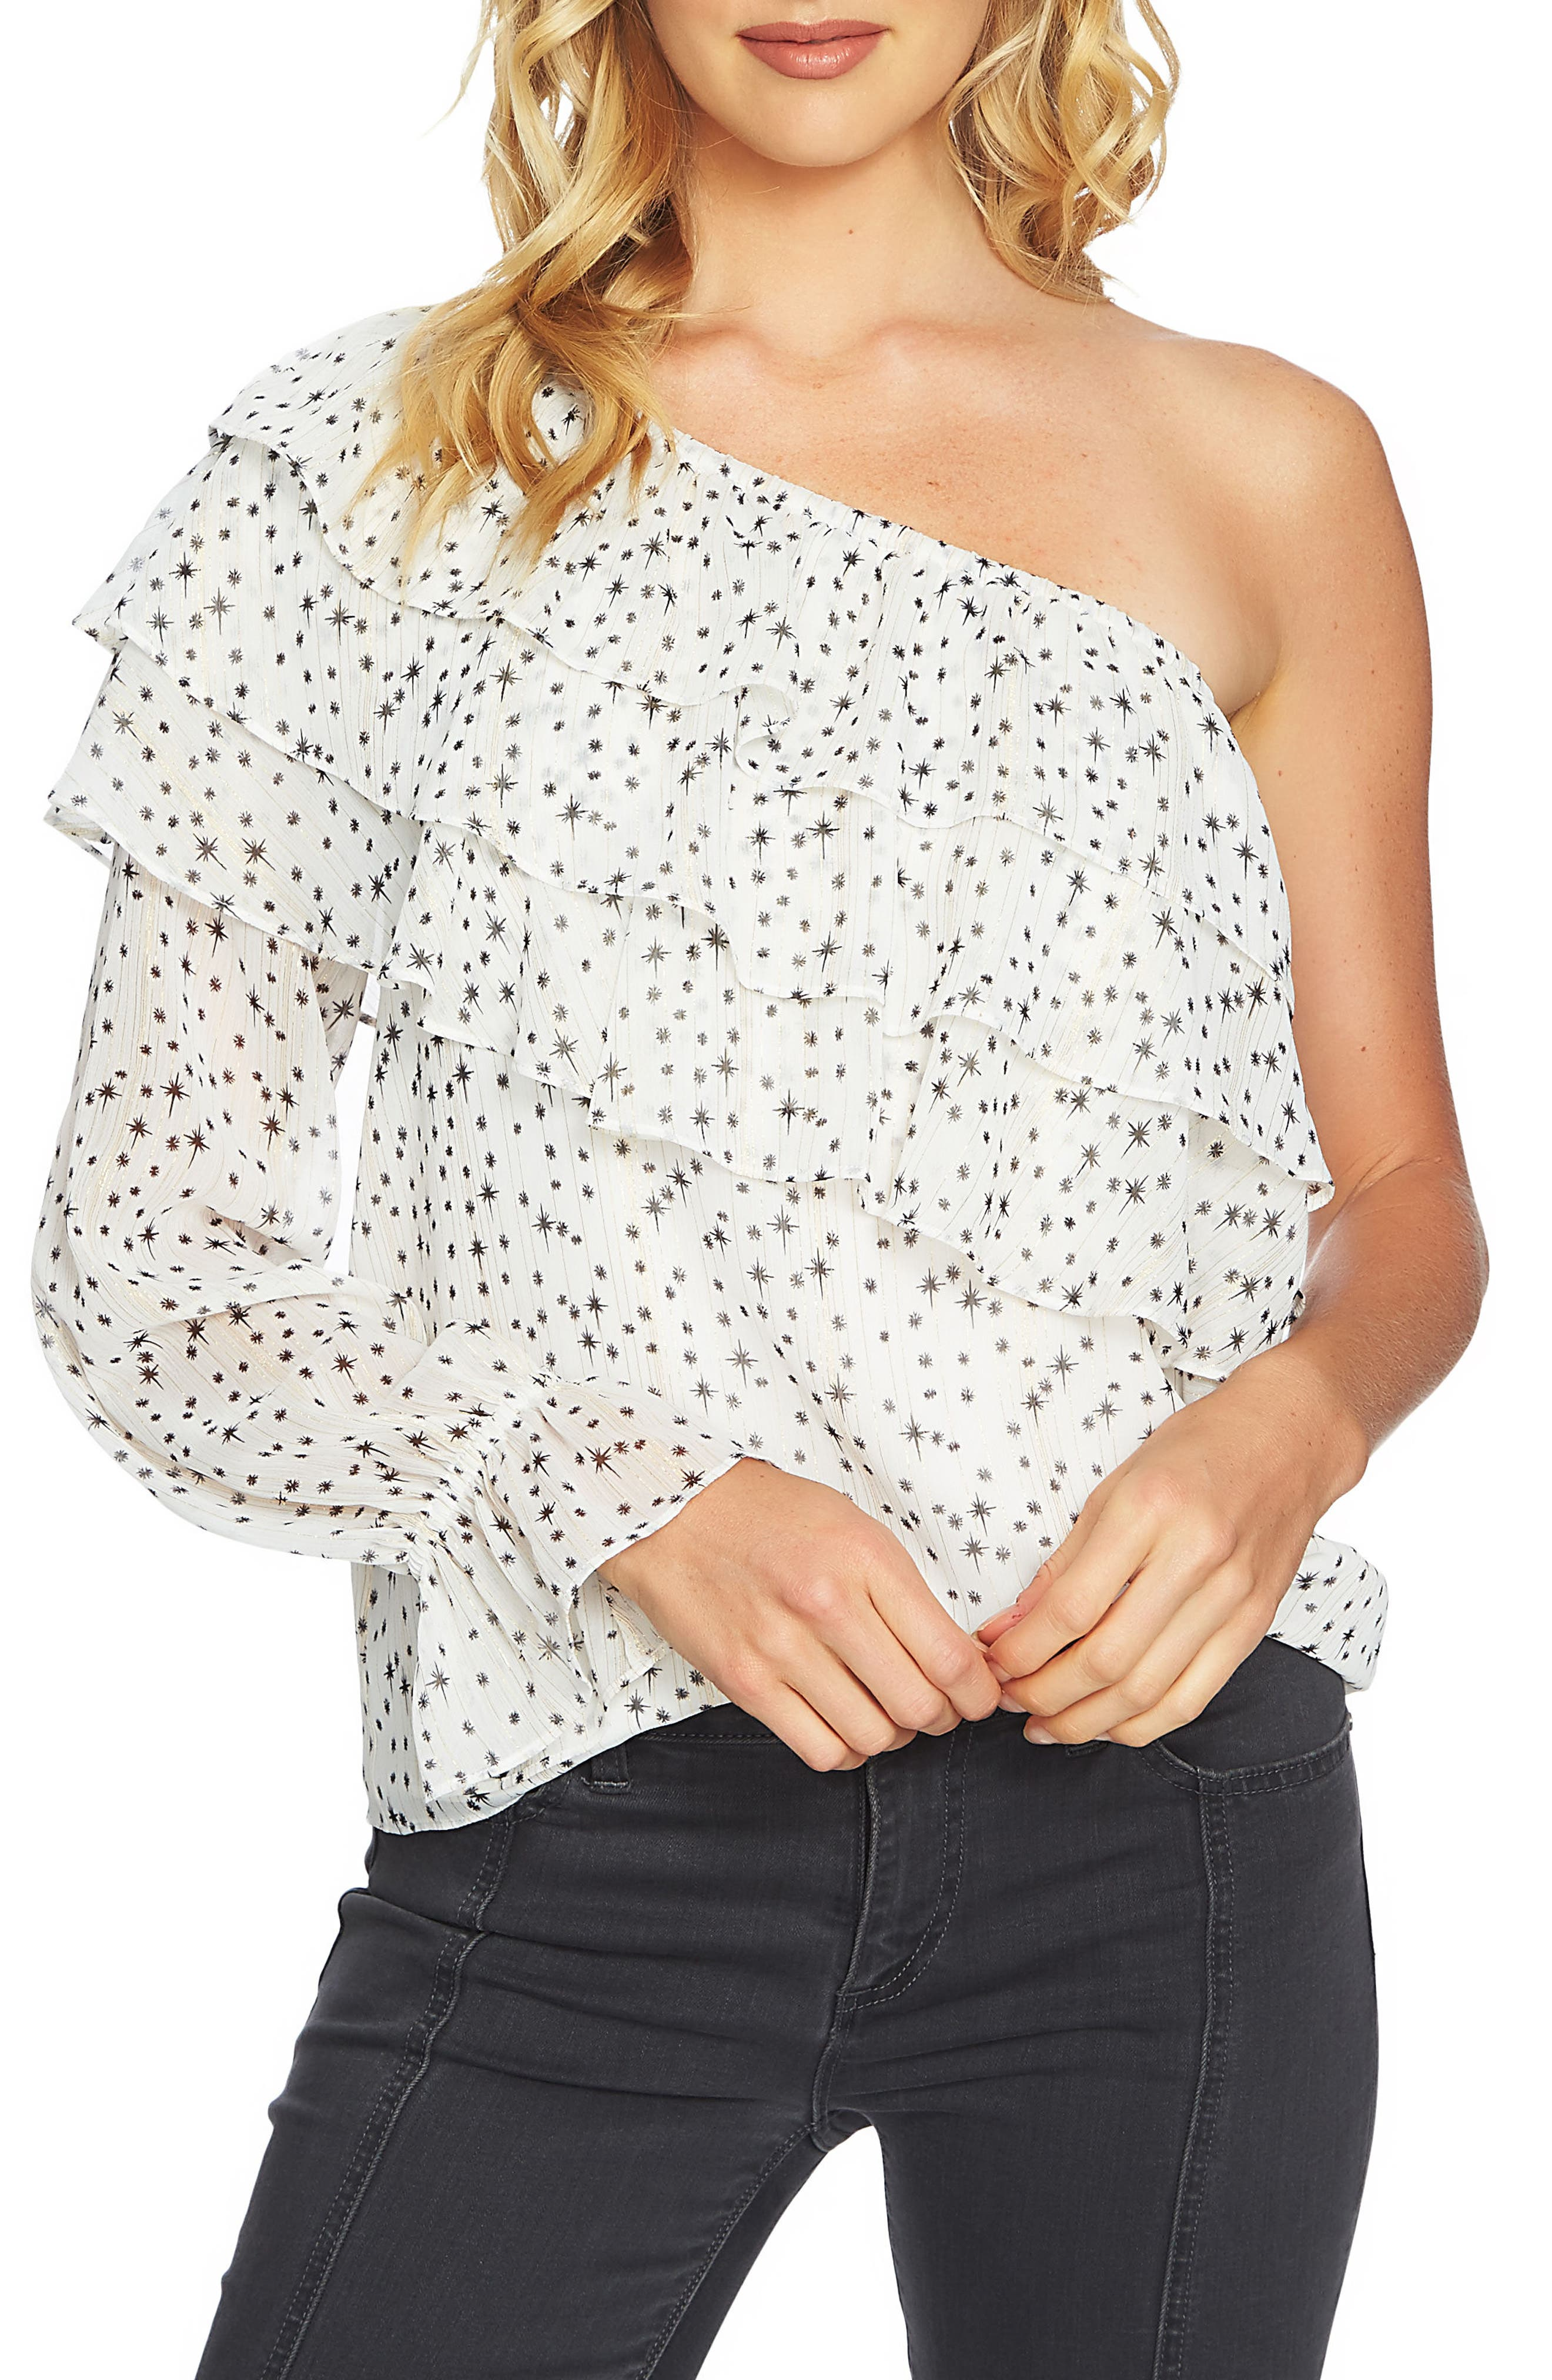 Main Image - 1.STATE One-Shoulder Tiered Blouse